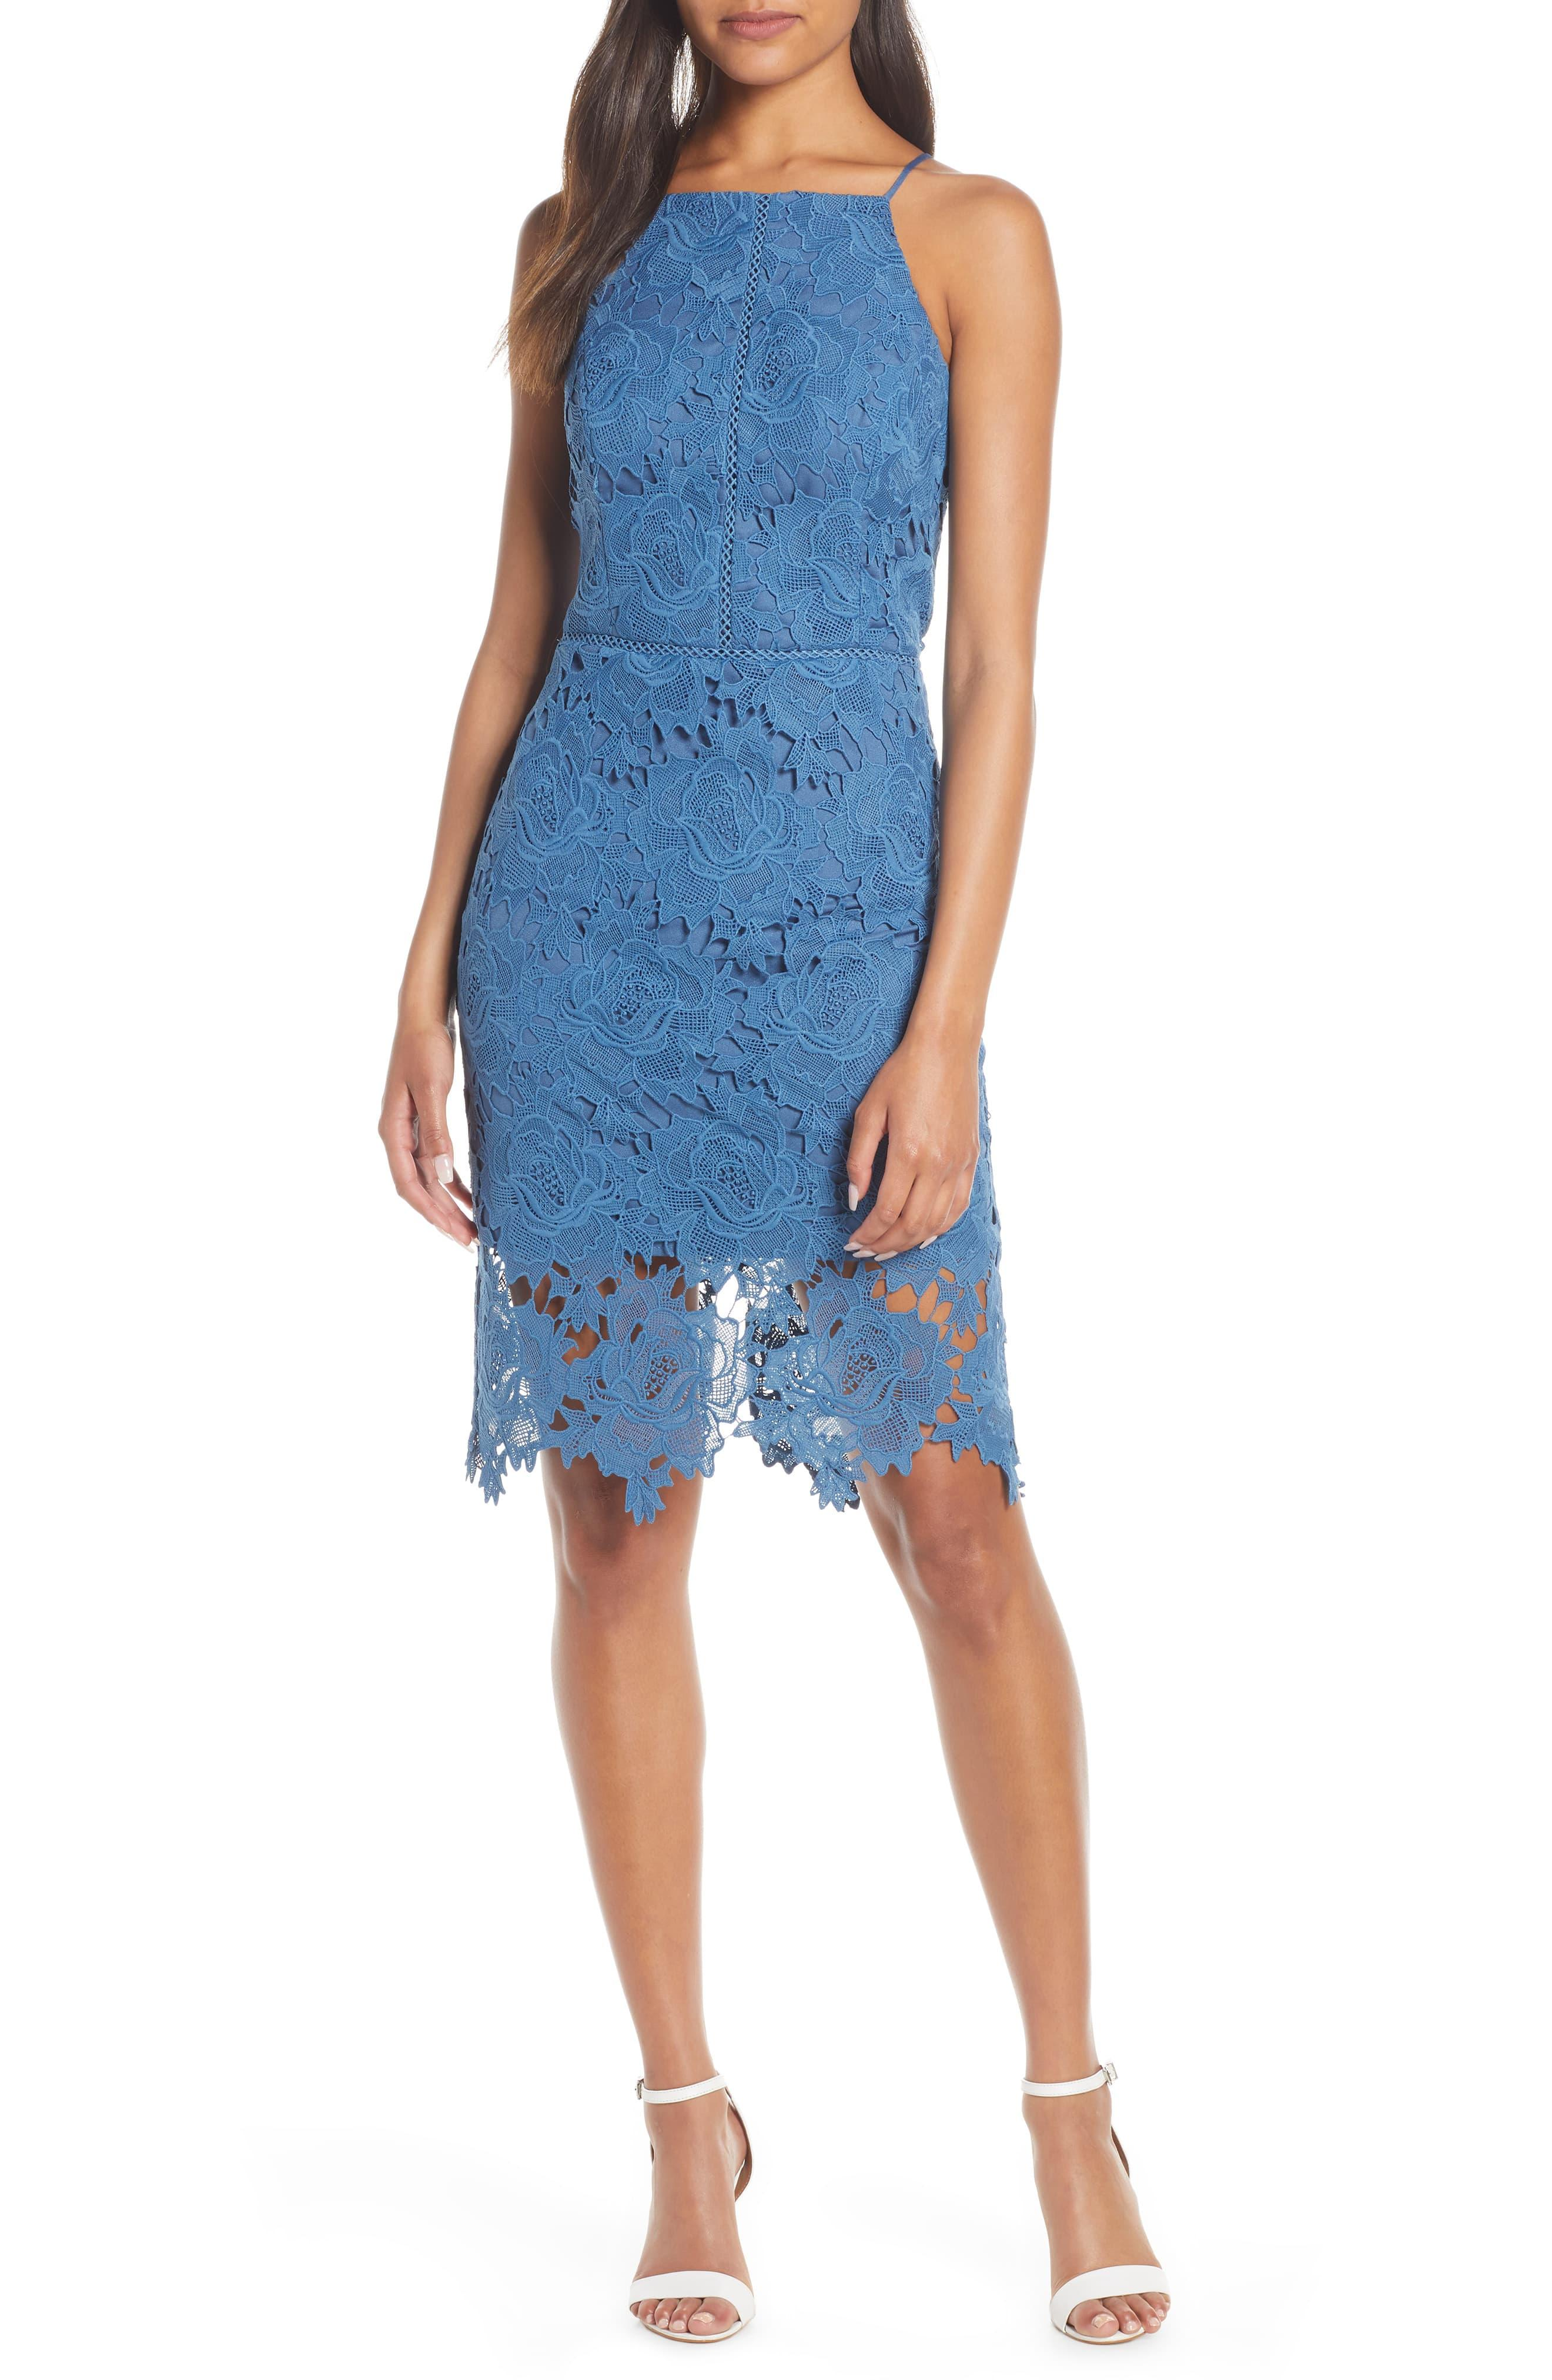 07a28ea21b45 Adelyn Rae Farrah Halter Neck Lace Cocktail Dress in Blue - Lyst